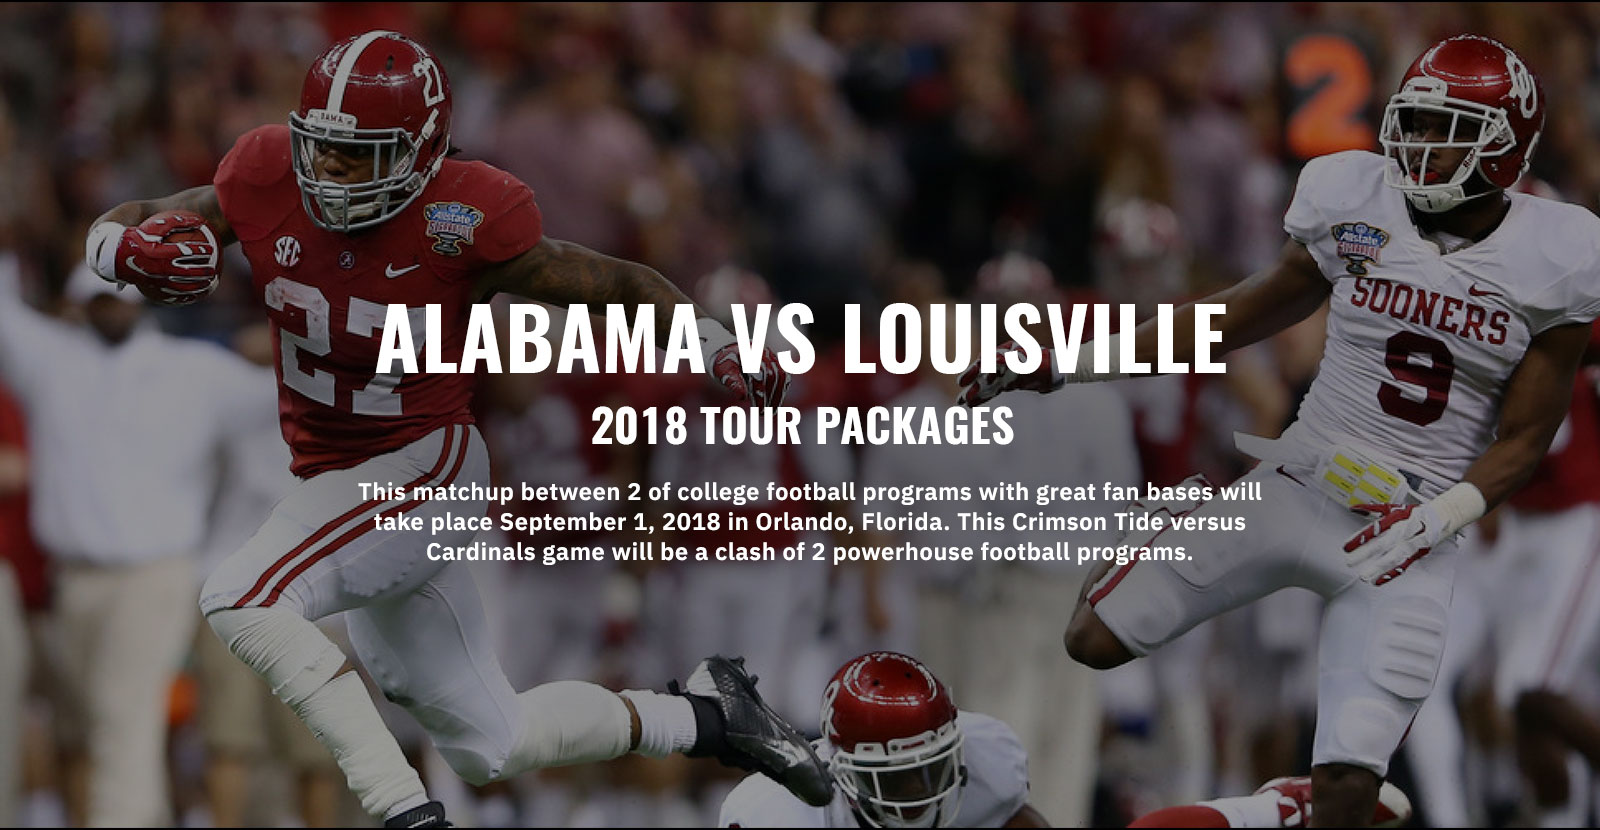 Alabama vs Louisville Game Travel